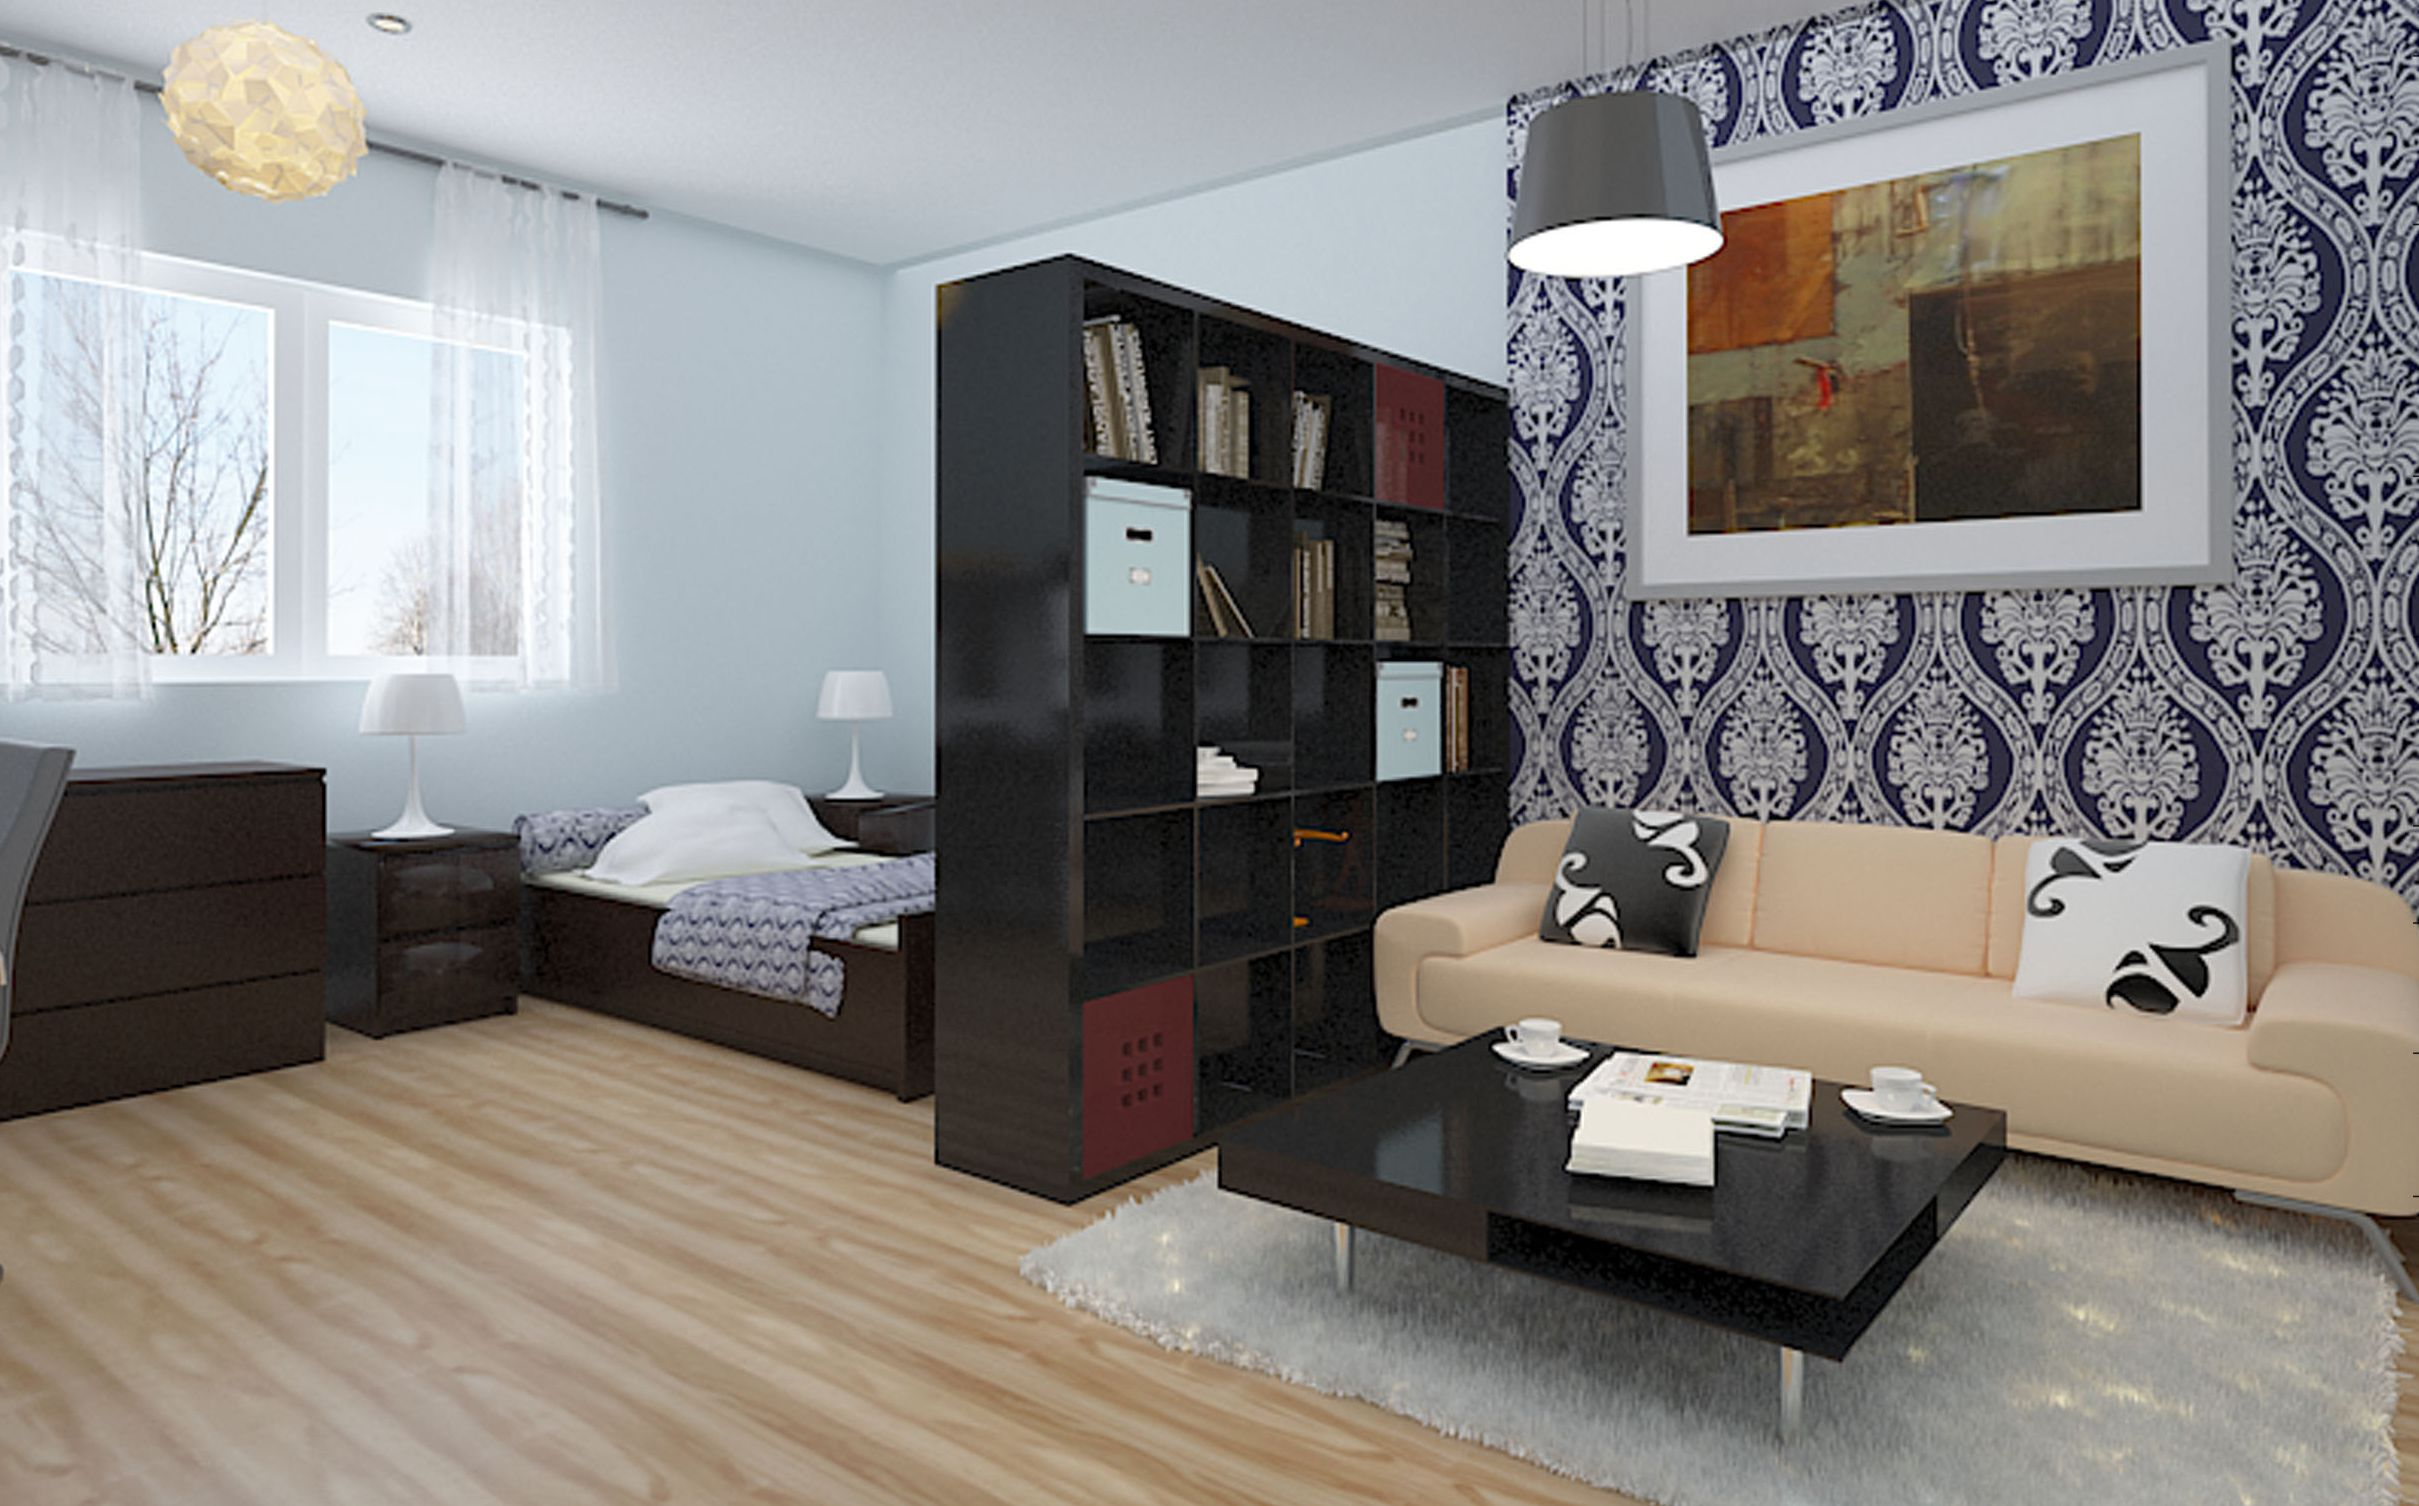 Charmant Astounding Design Of The Studio Apartment Layout With Young Brown Wooden Floor  Ideas Added With White